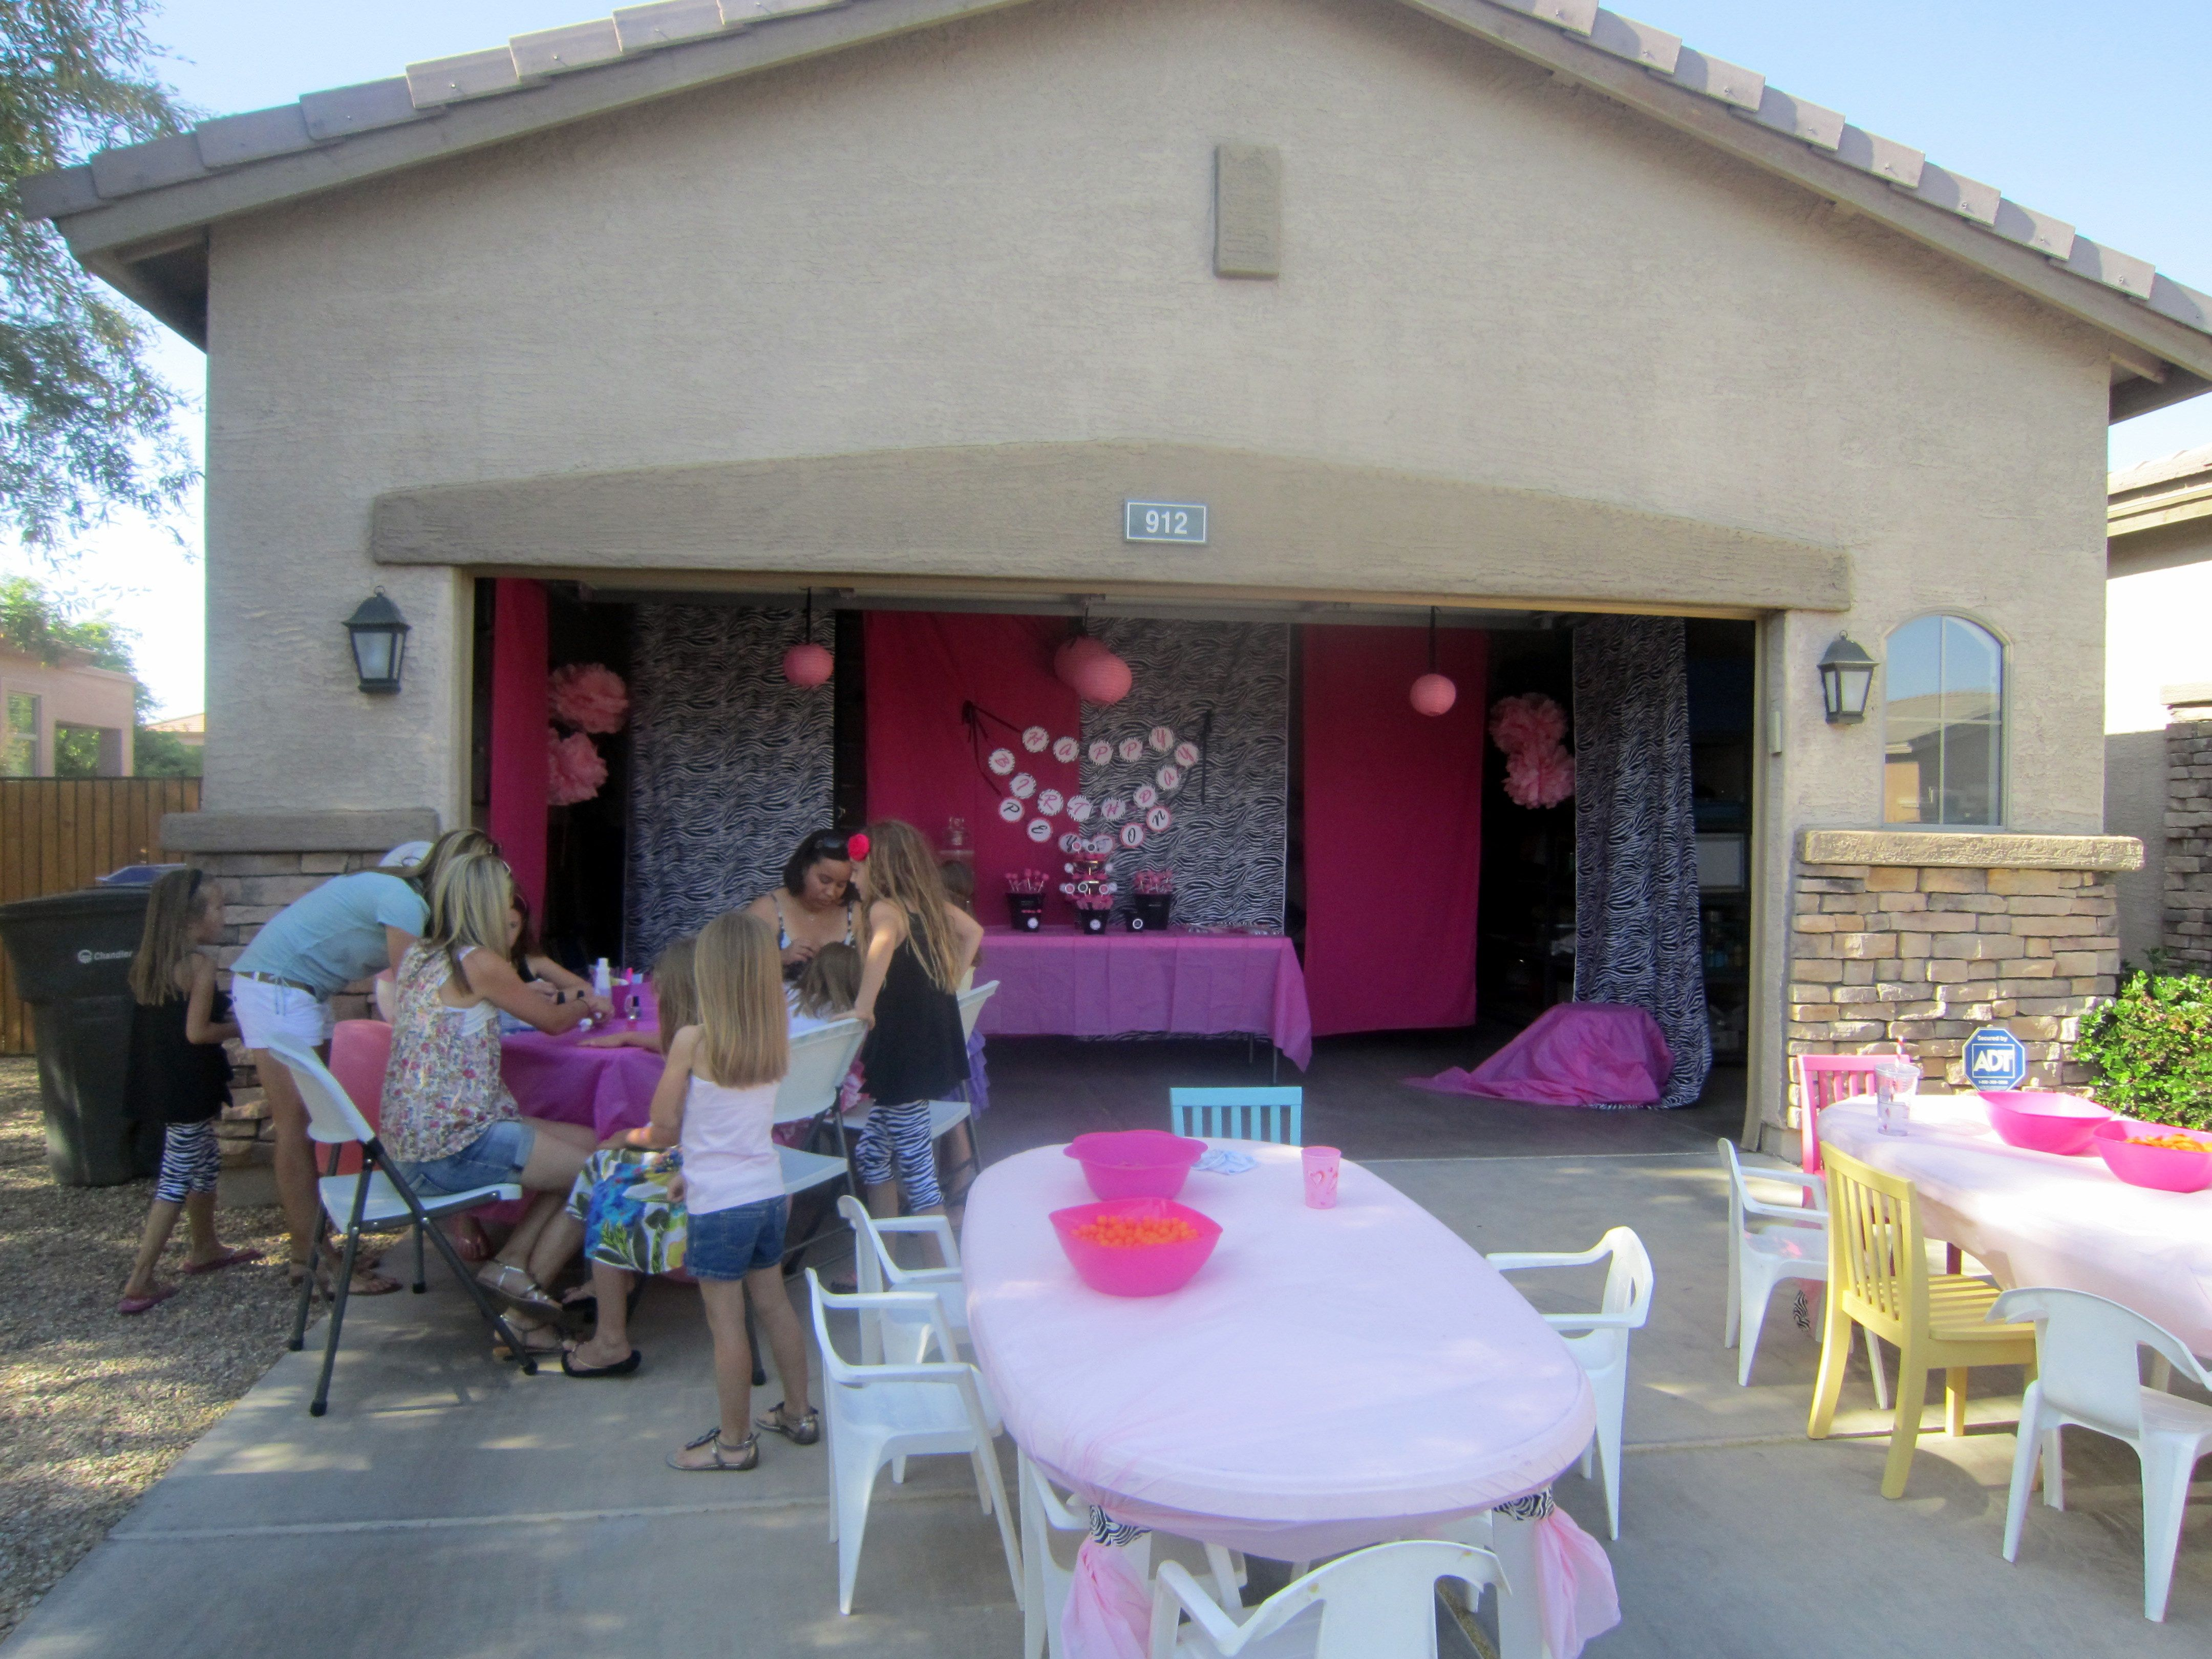 Glam Party Set Up In The Front Garage Garage Party Garage Party Decorations 60th Birthday Party